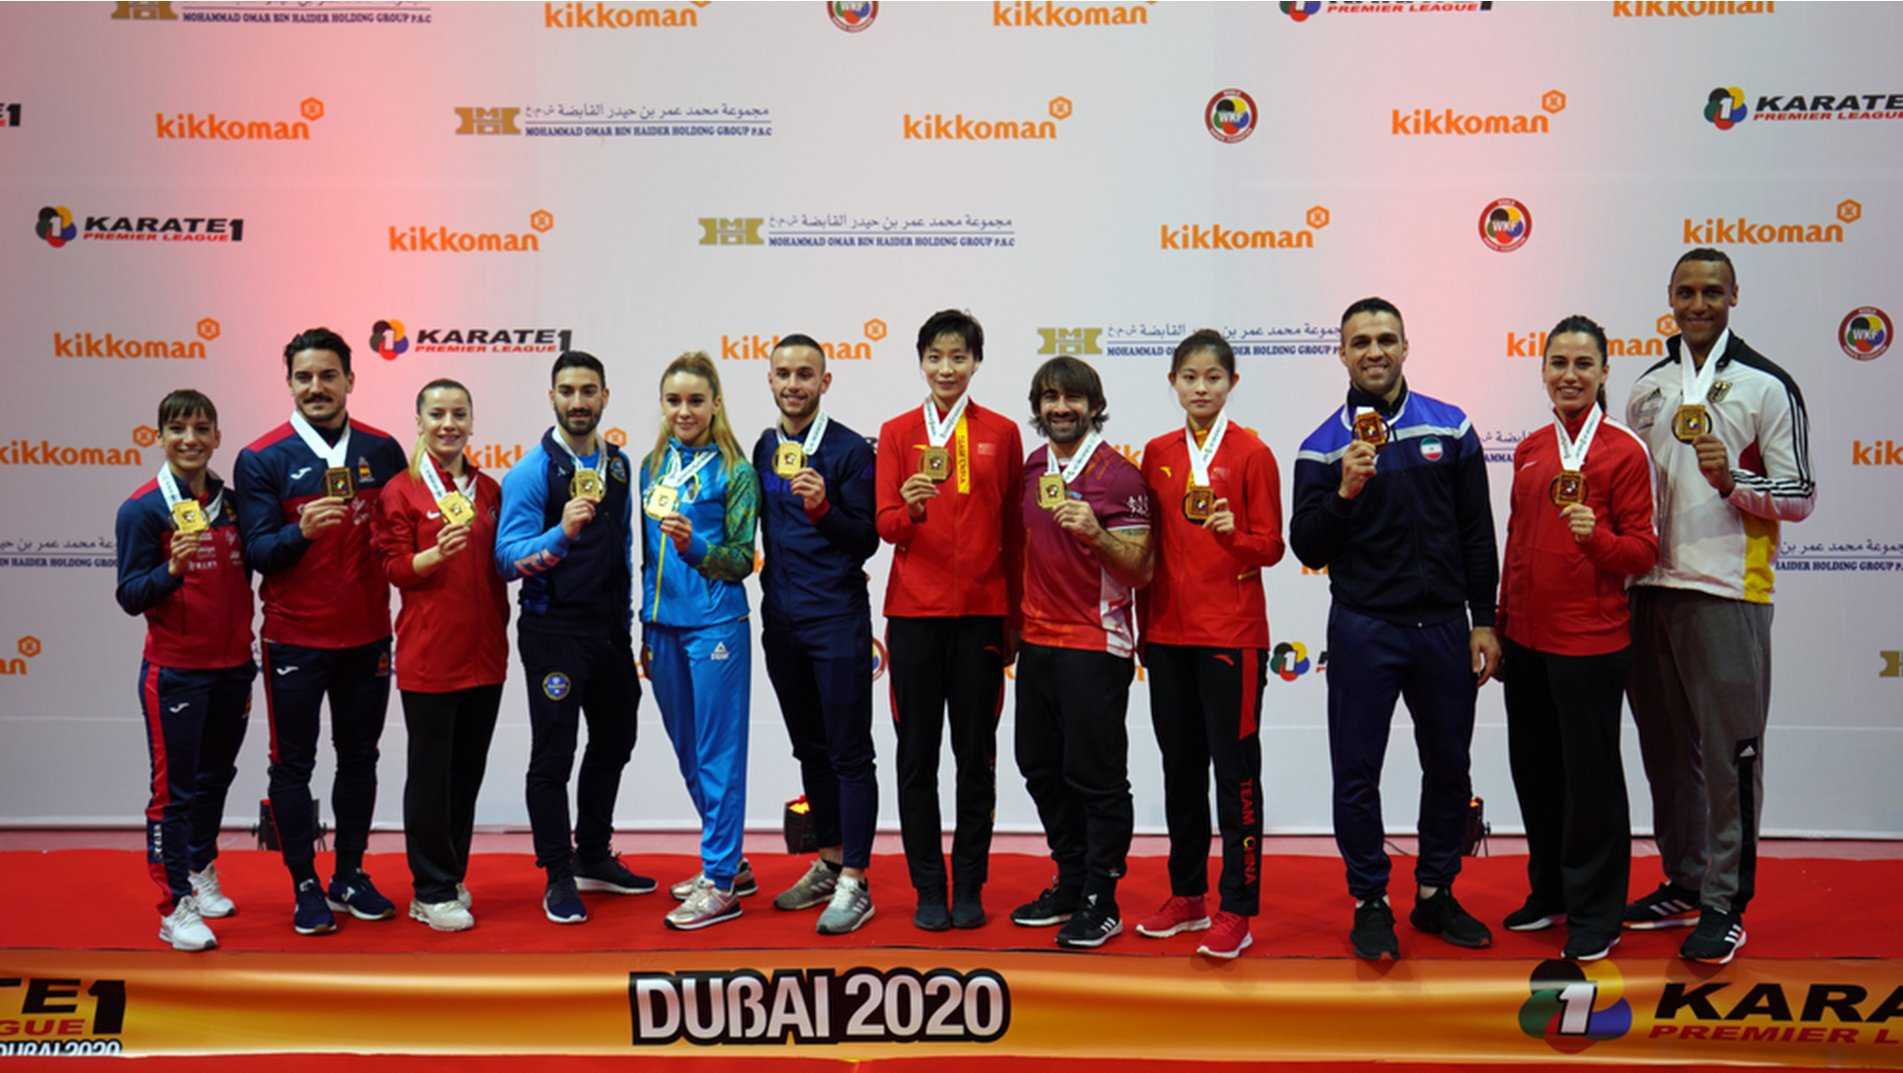 Grand Winners and favourites prevail as Karate 1 Premier League concludes in Dubai